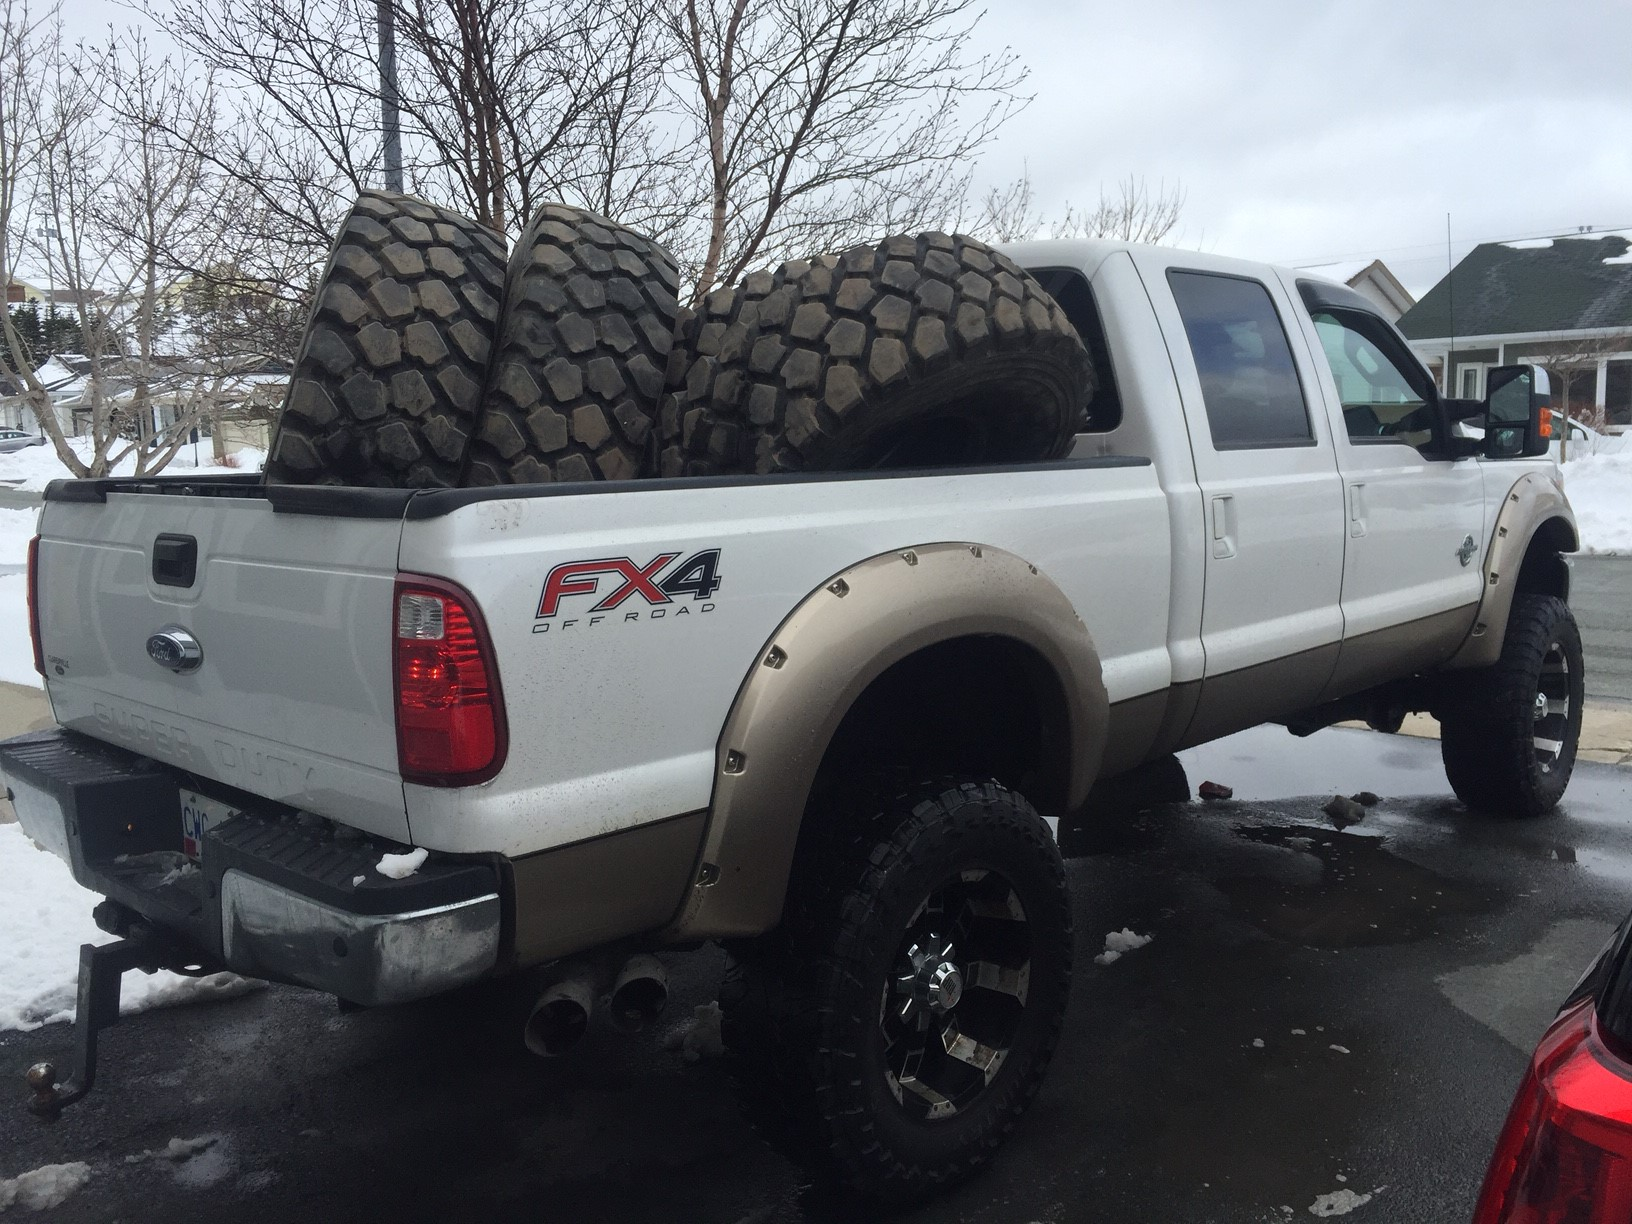 """Ford Excursion 2015 >> 06' F350 Rebuild on 47"""" Military Tires - Ford Powerstroke Diesel Forum"""